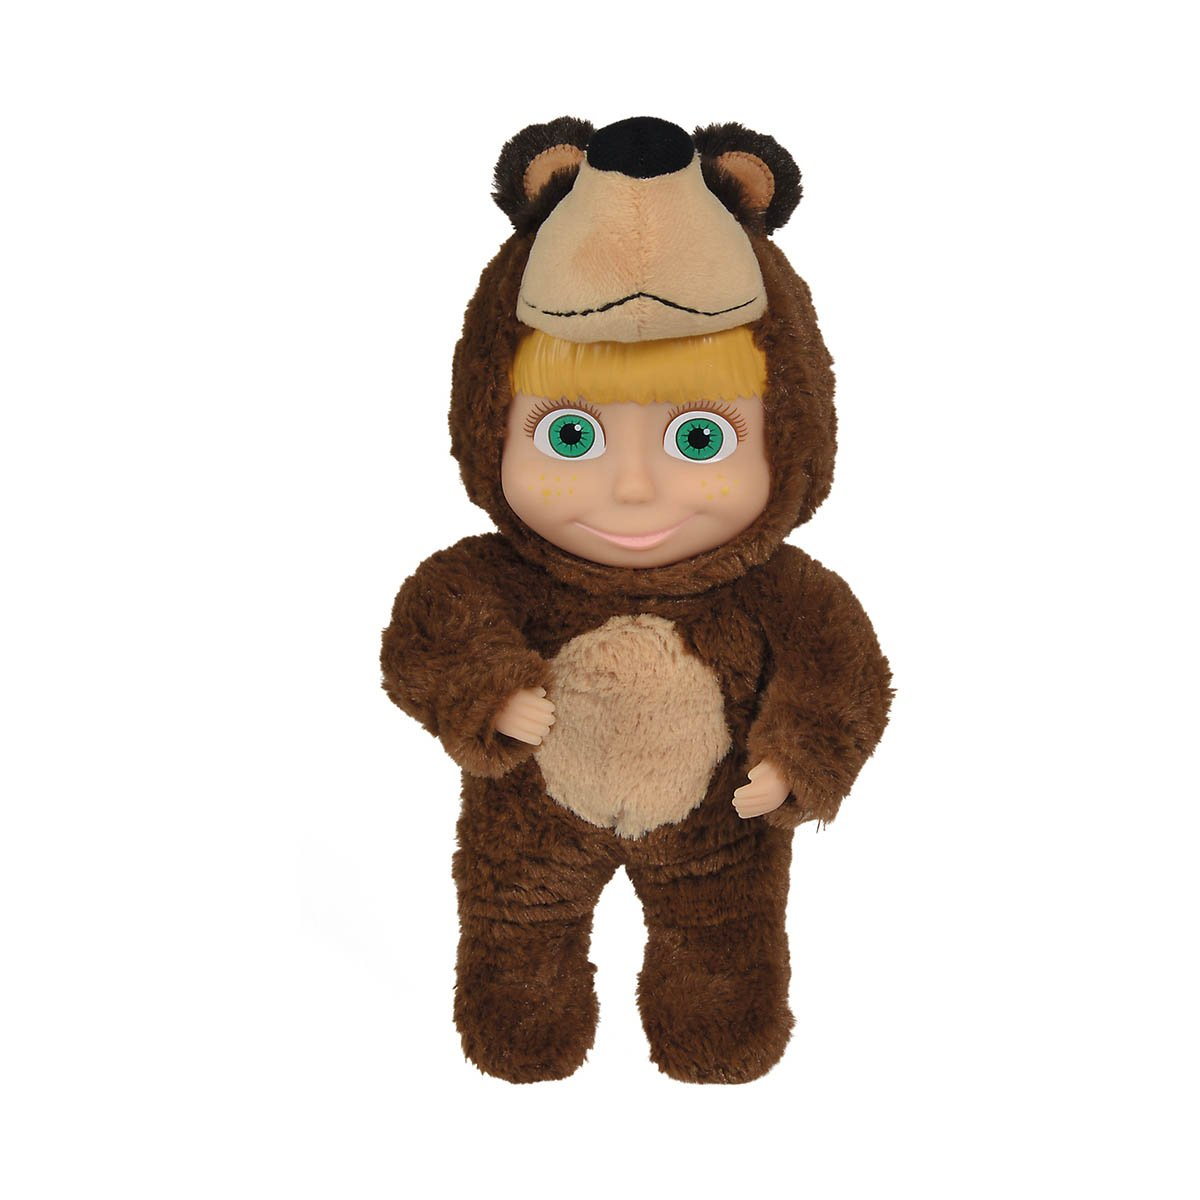 Papusa Masha and The Bear, in costum de urs, 25 cm